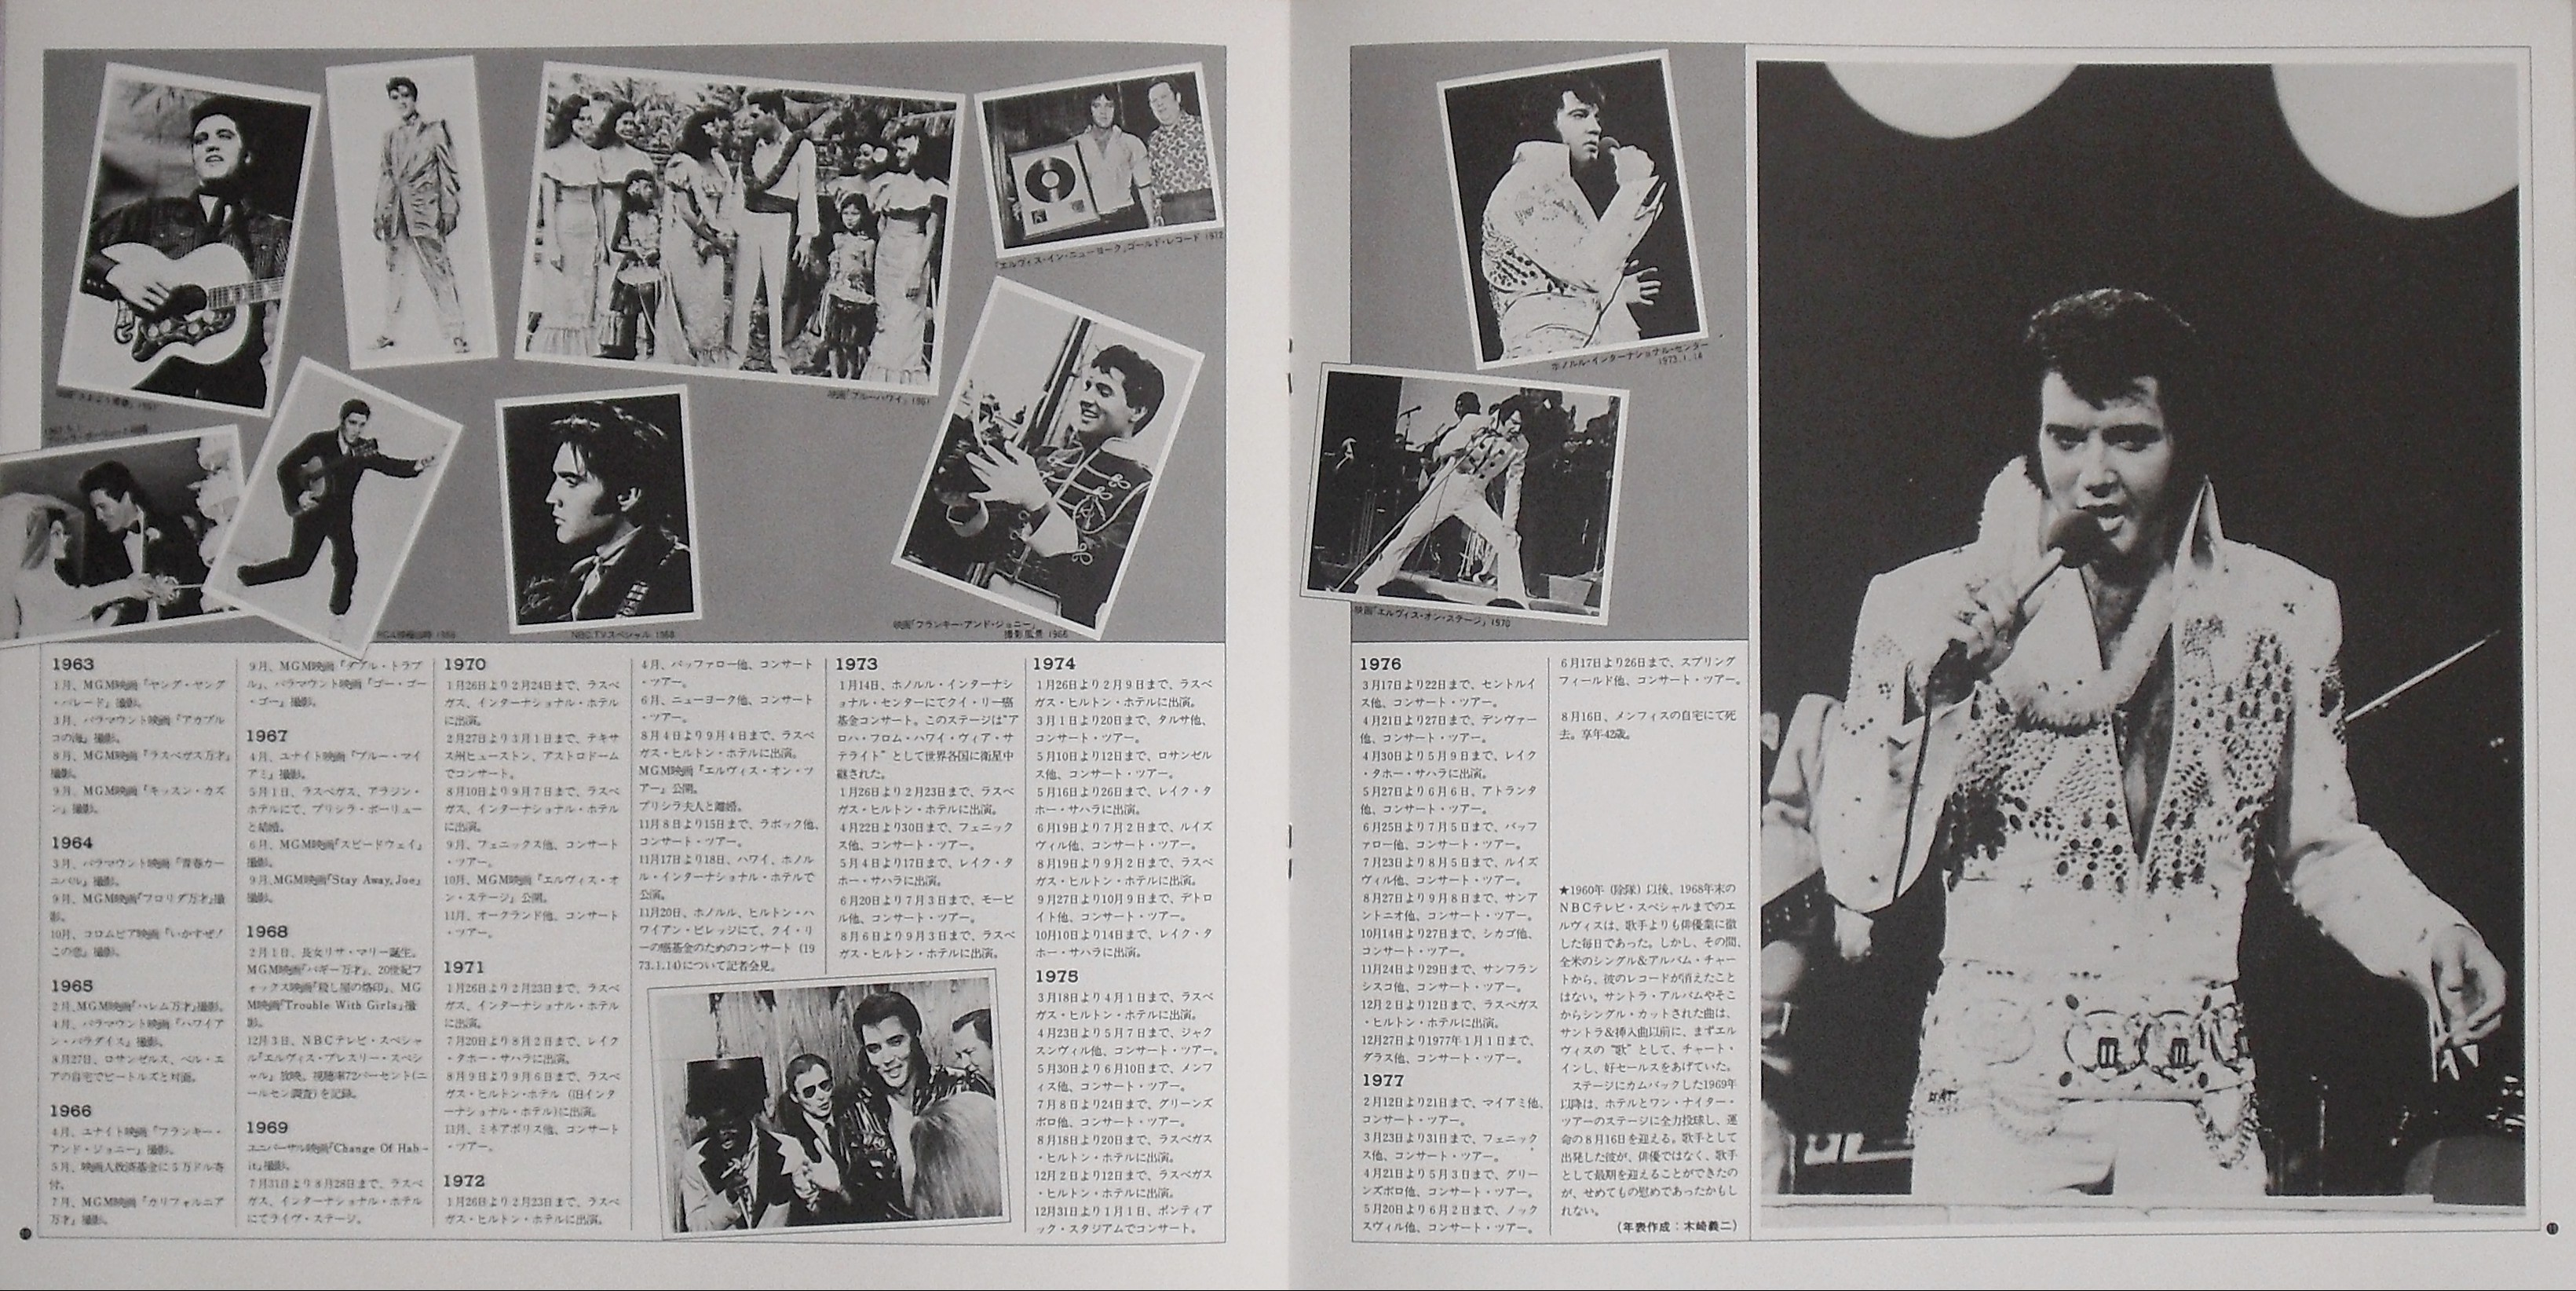 ELVIS BY REQUEST OF JAPANESE FANS 10_11kva6t